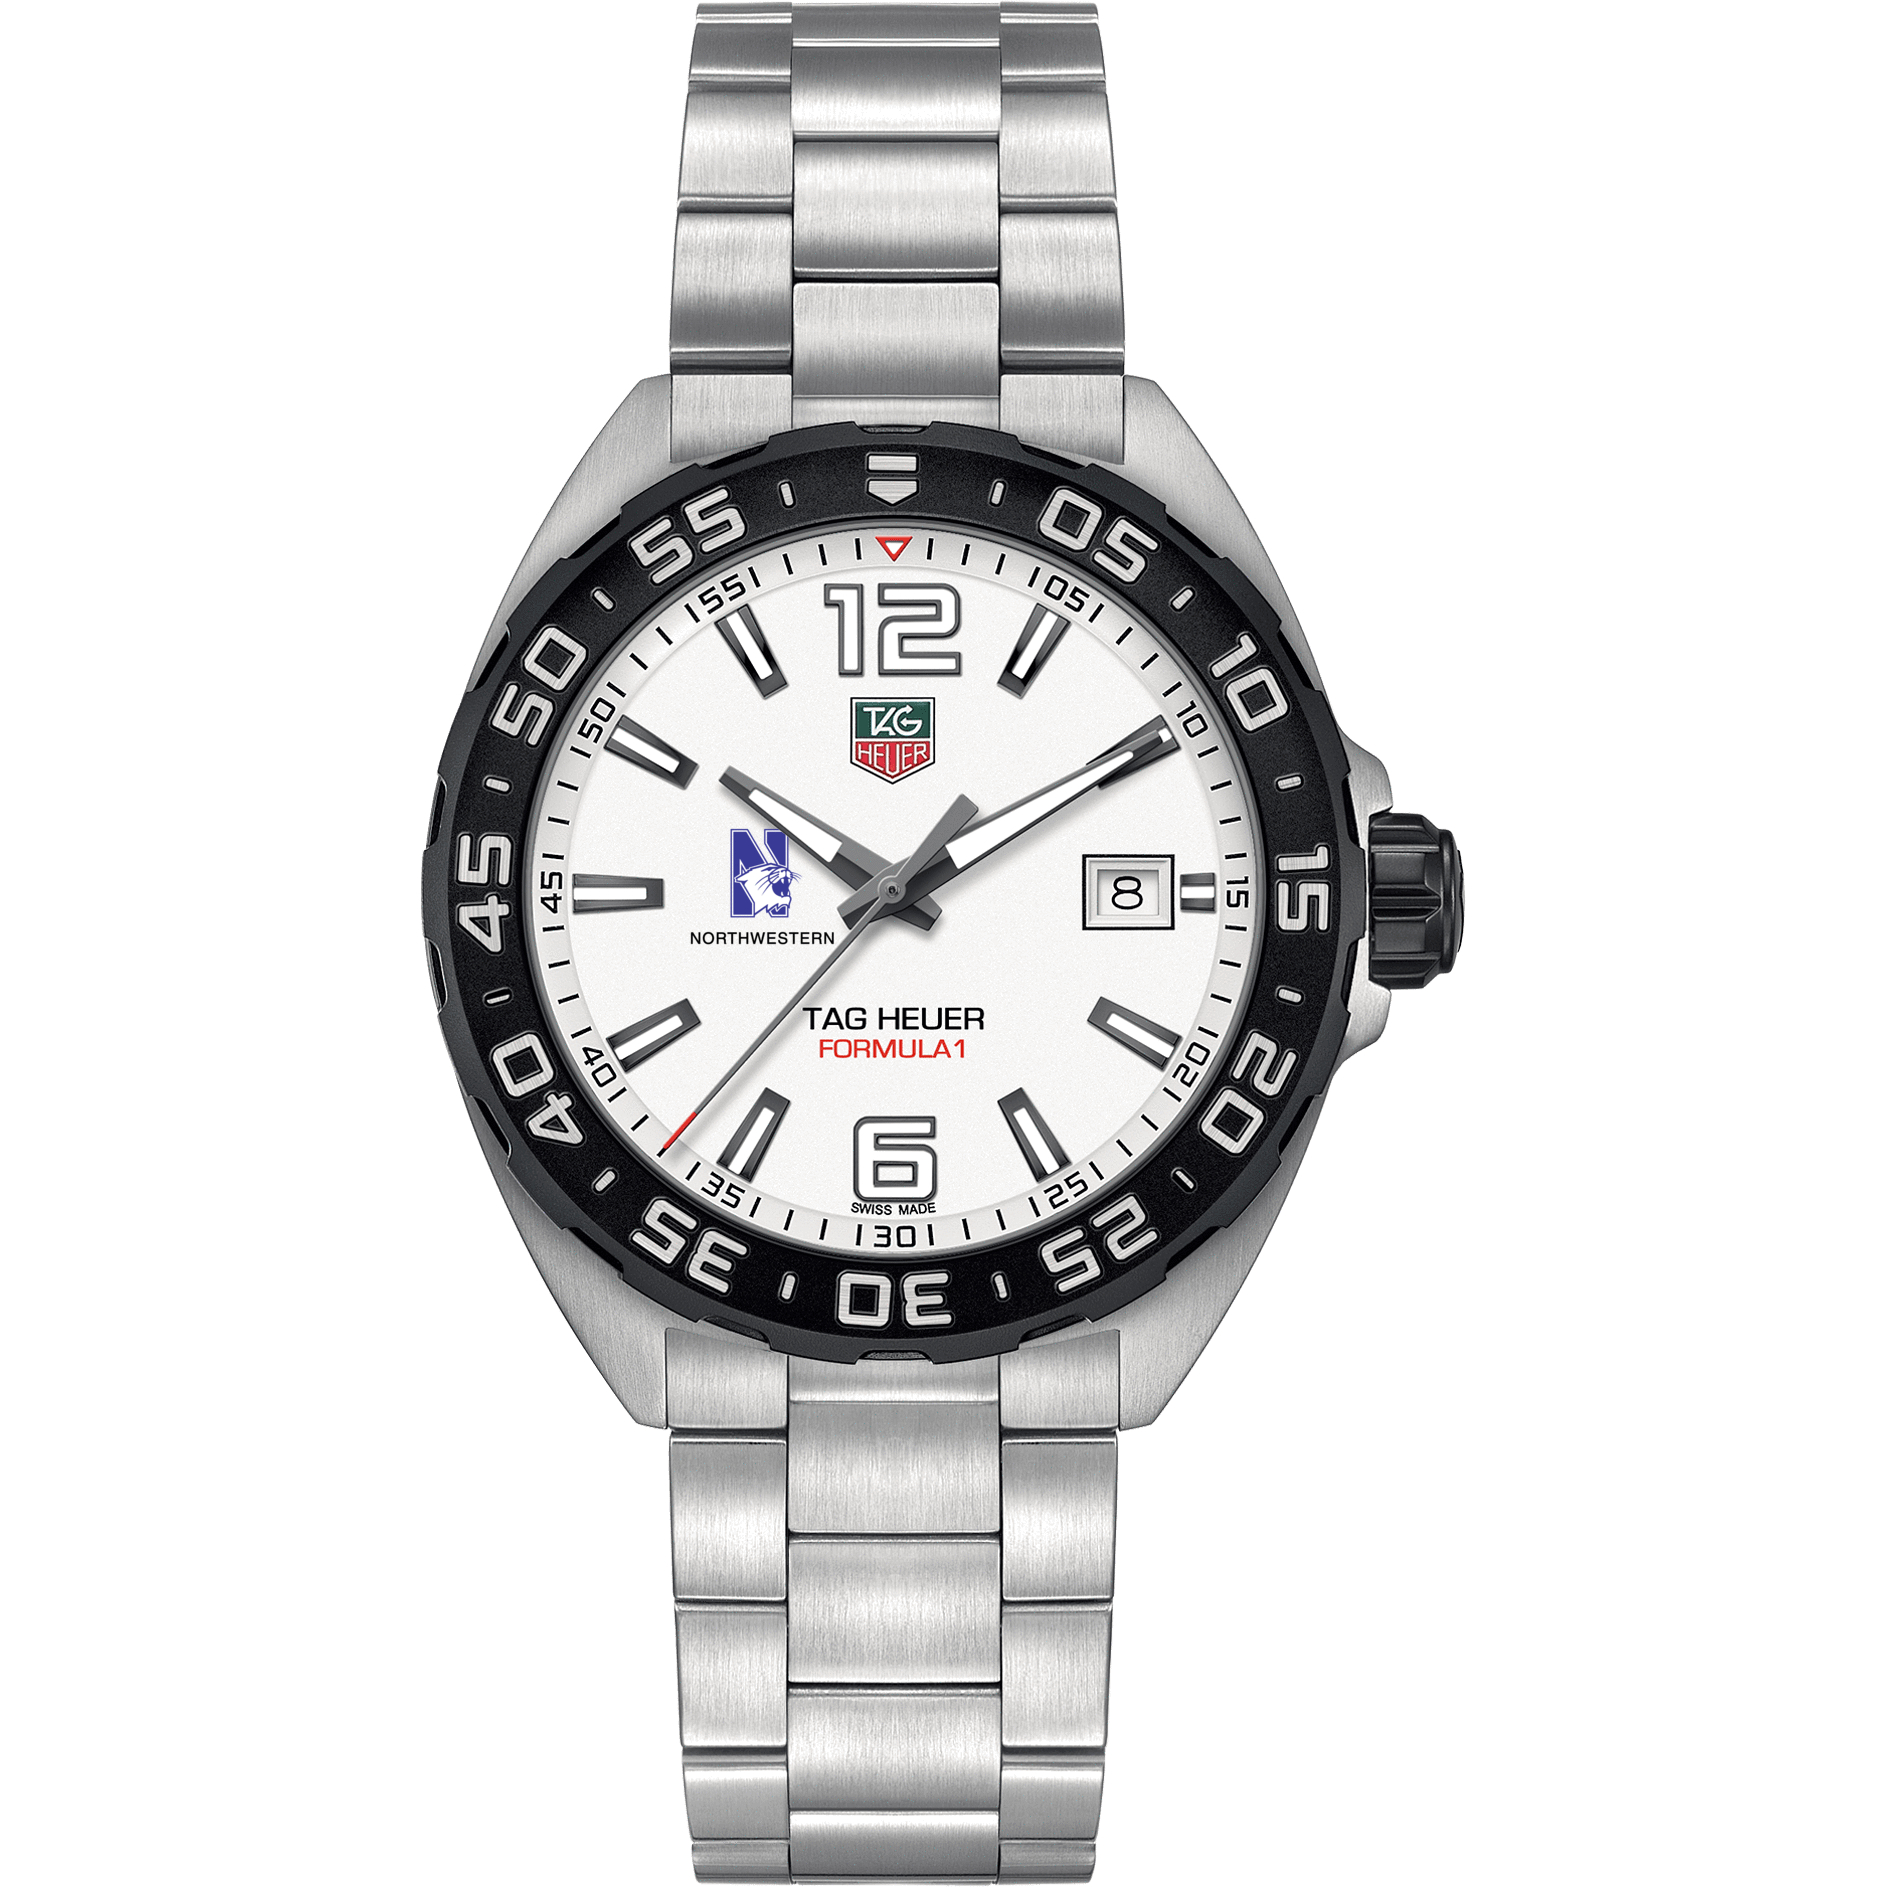 Northwestern Men's TAG Heuer Formula 1 - Image 2